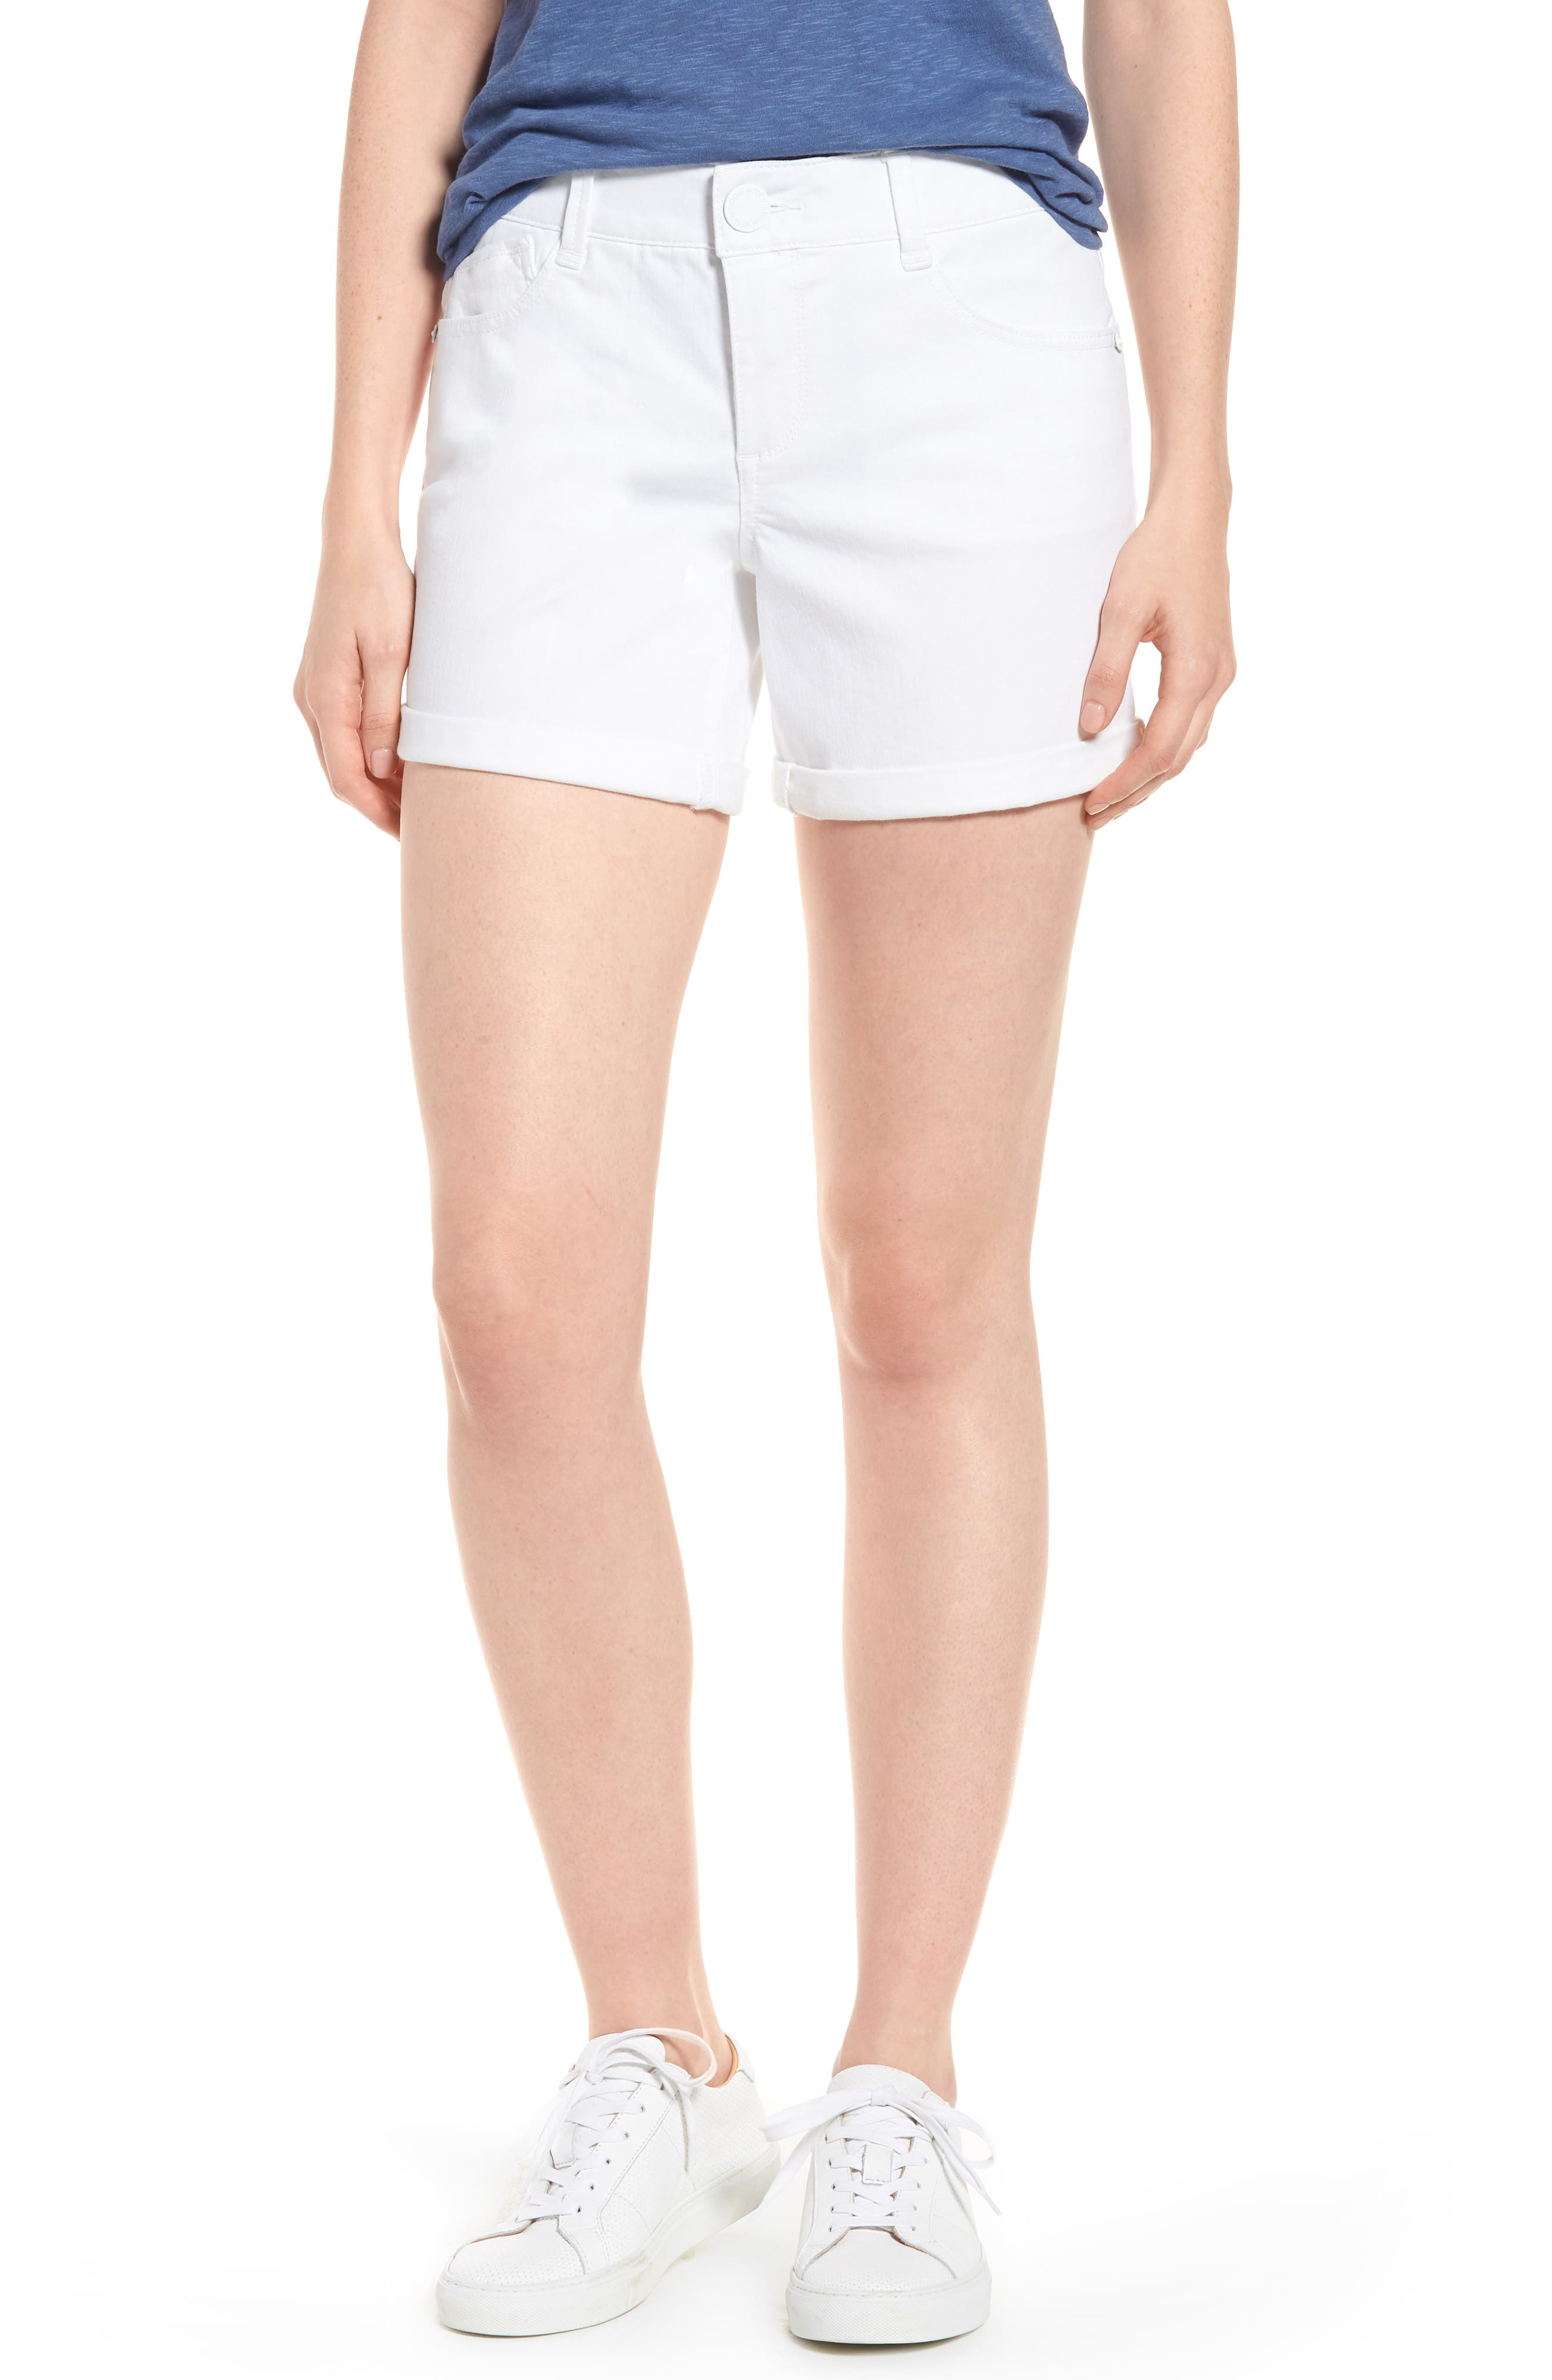 Ab-solution Cuffed White Shorts,                         Main,                         color, Optic White